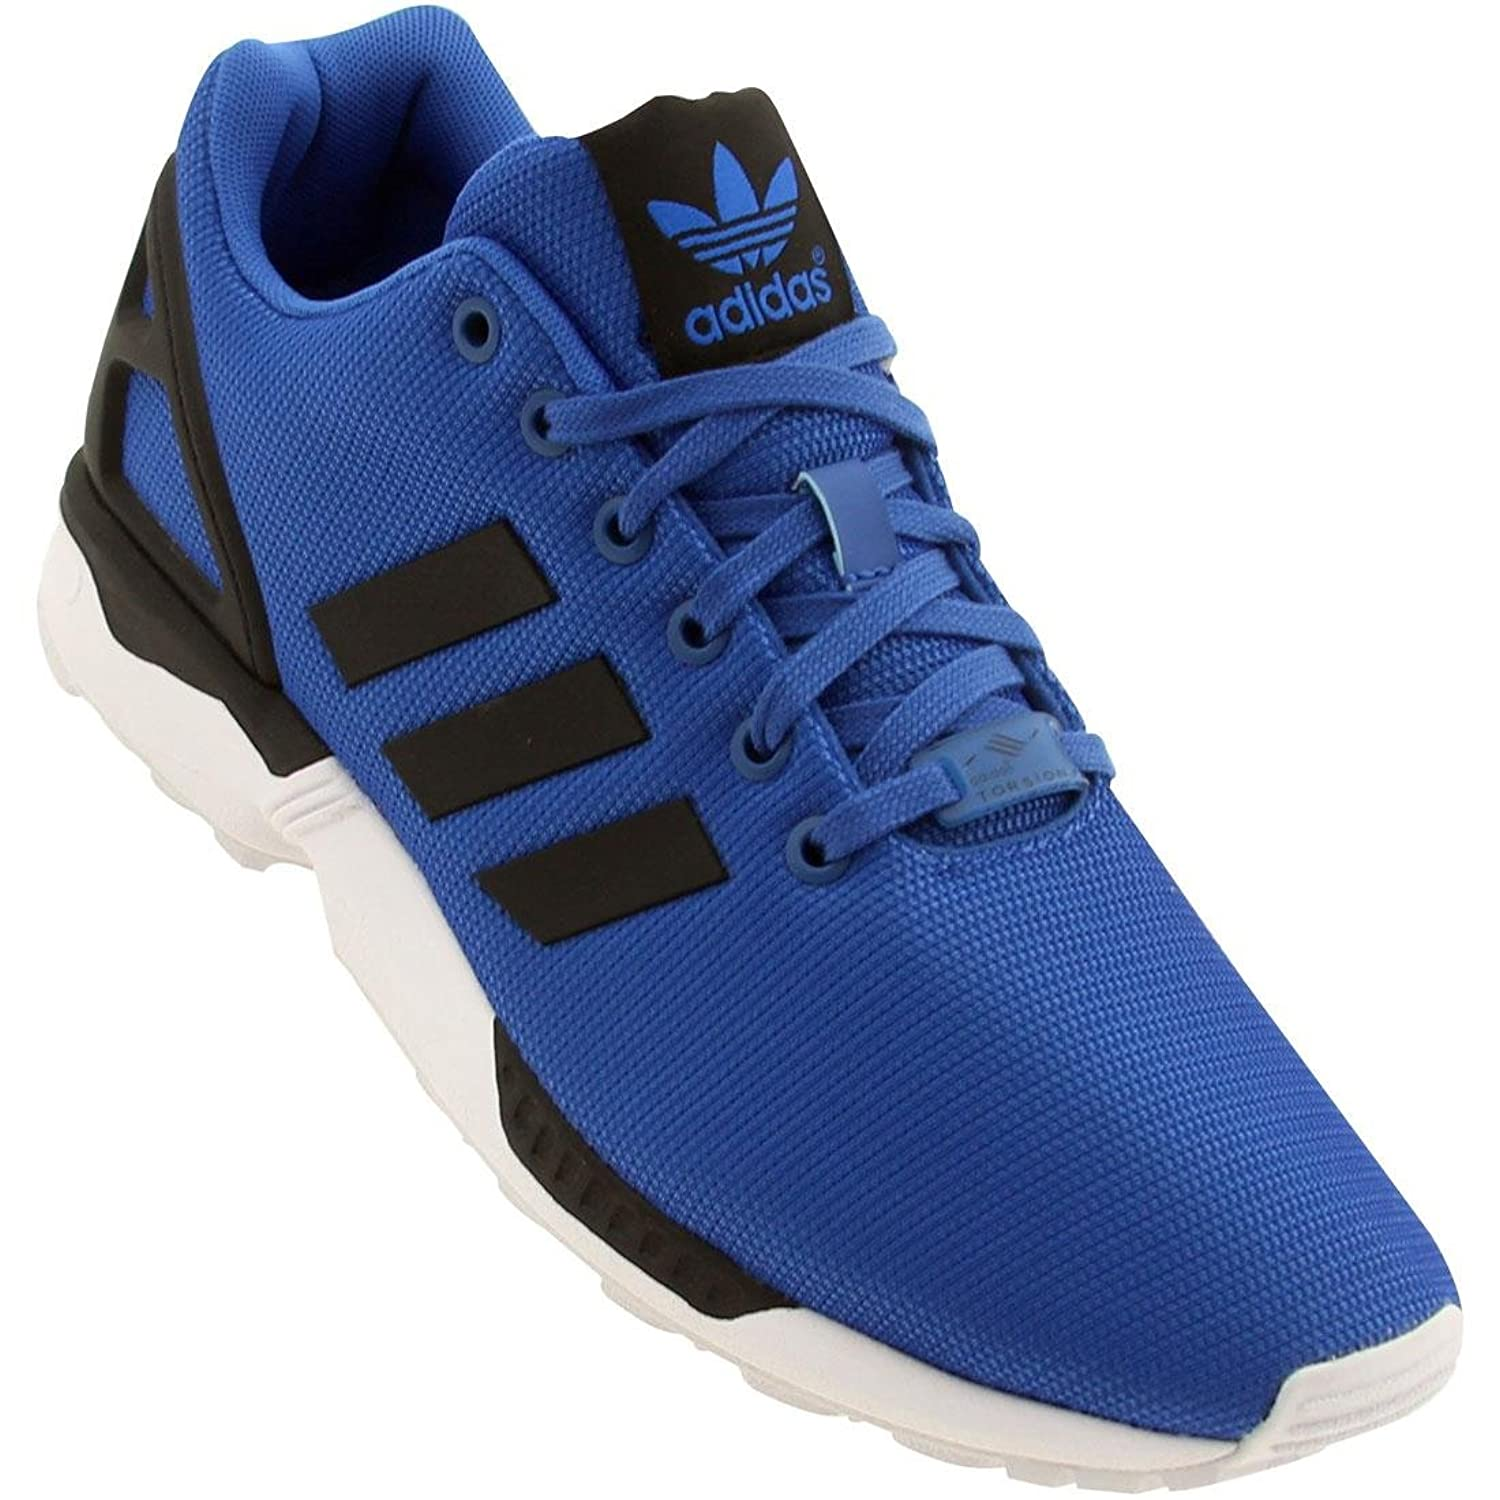 low priced 6afc7 bfd9f discount code for adidas zx flux ocean amazon 67746 b8455